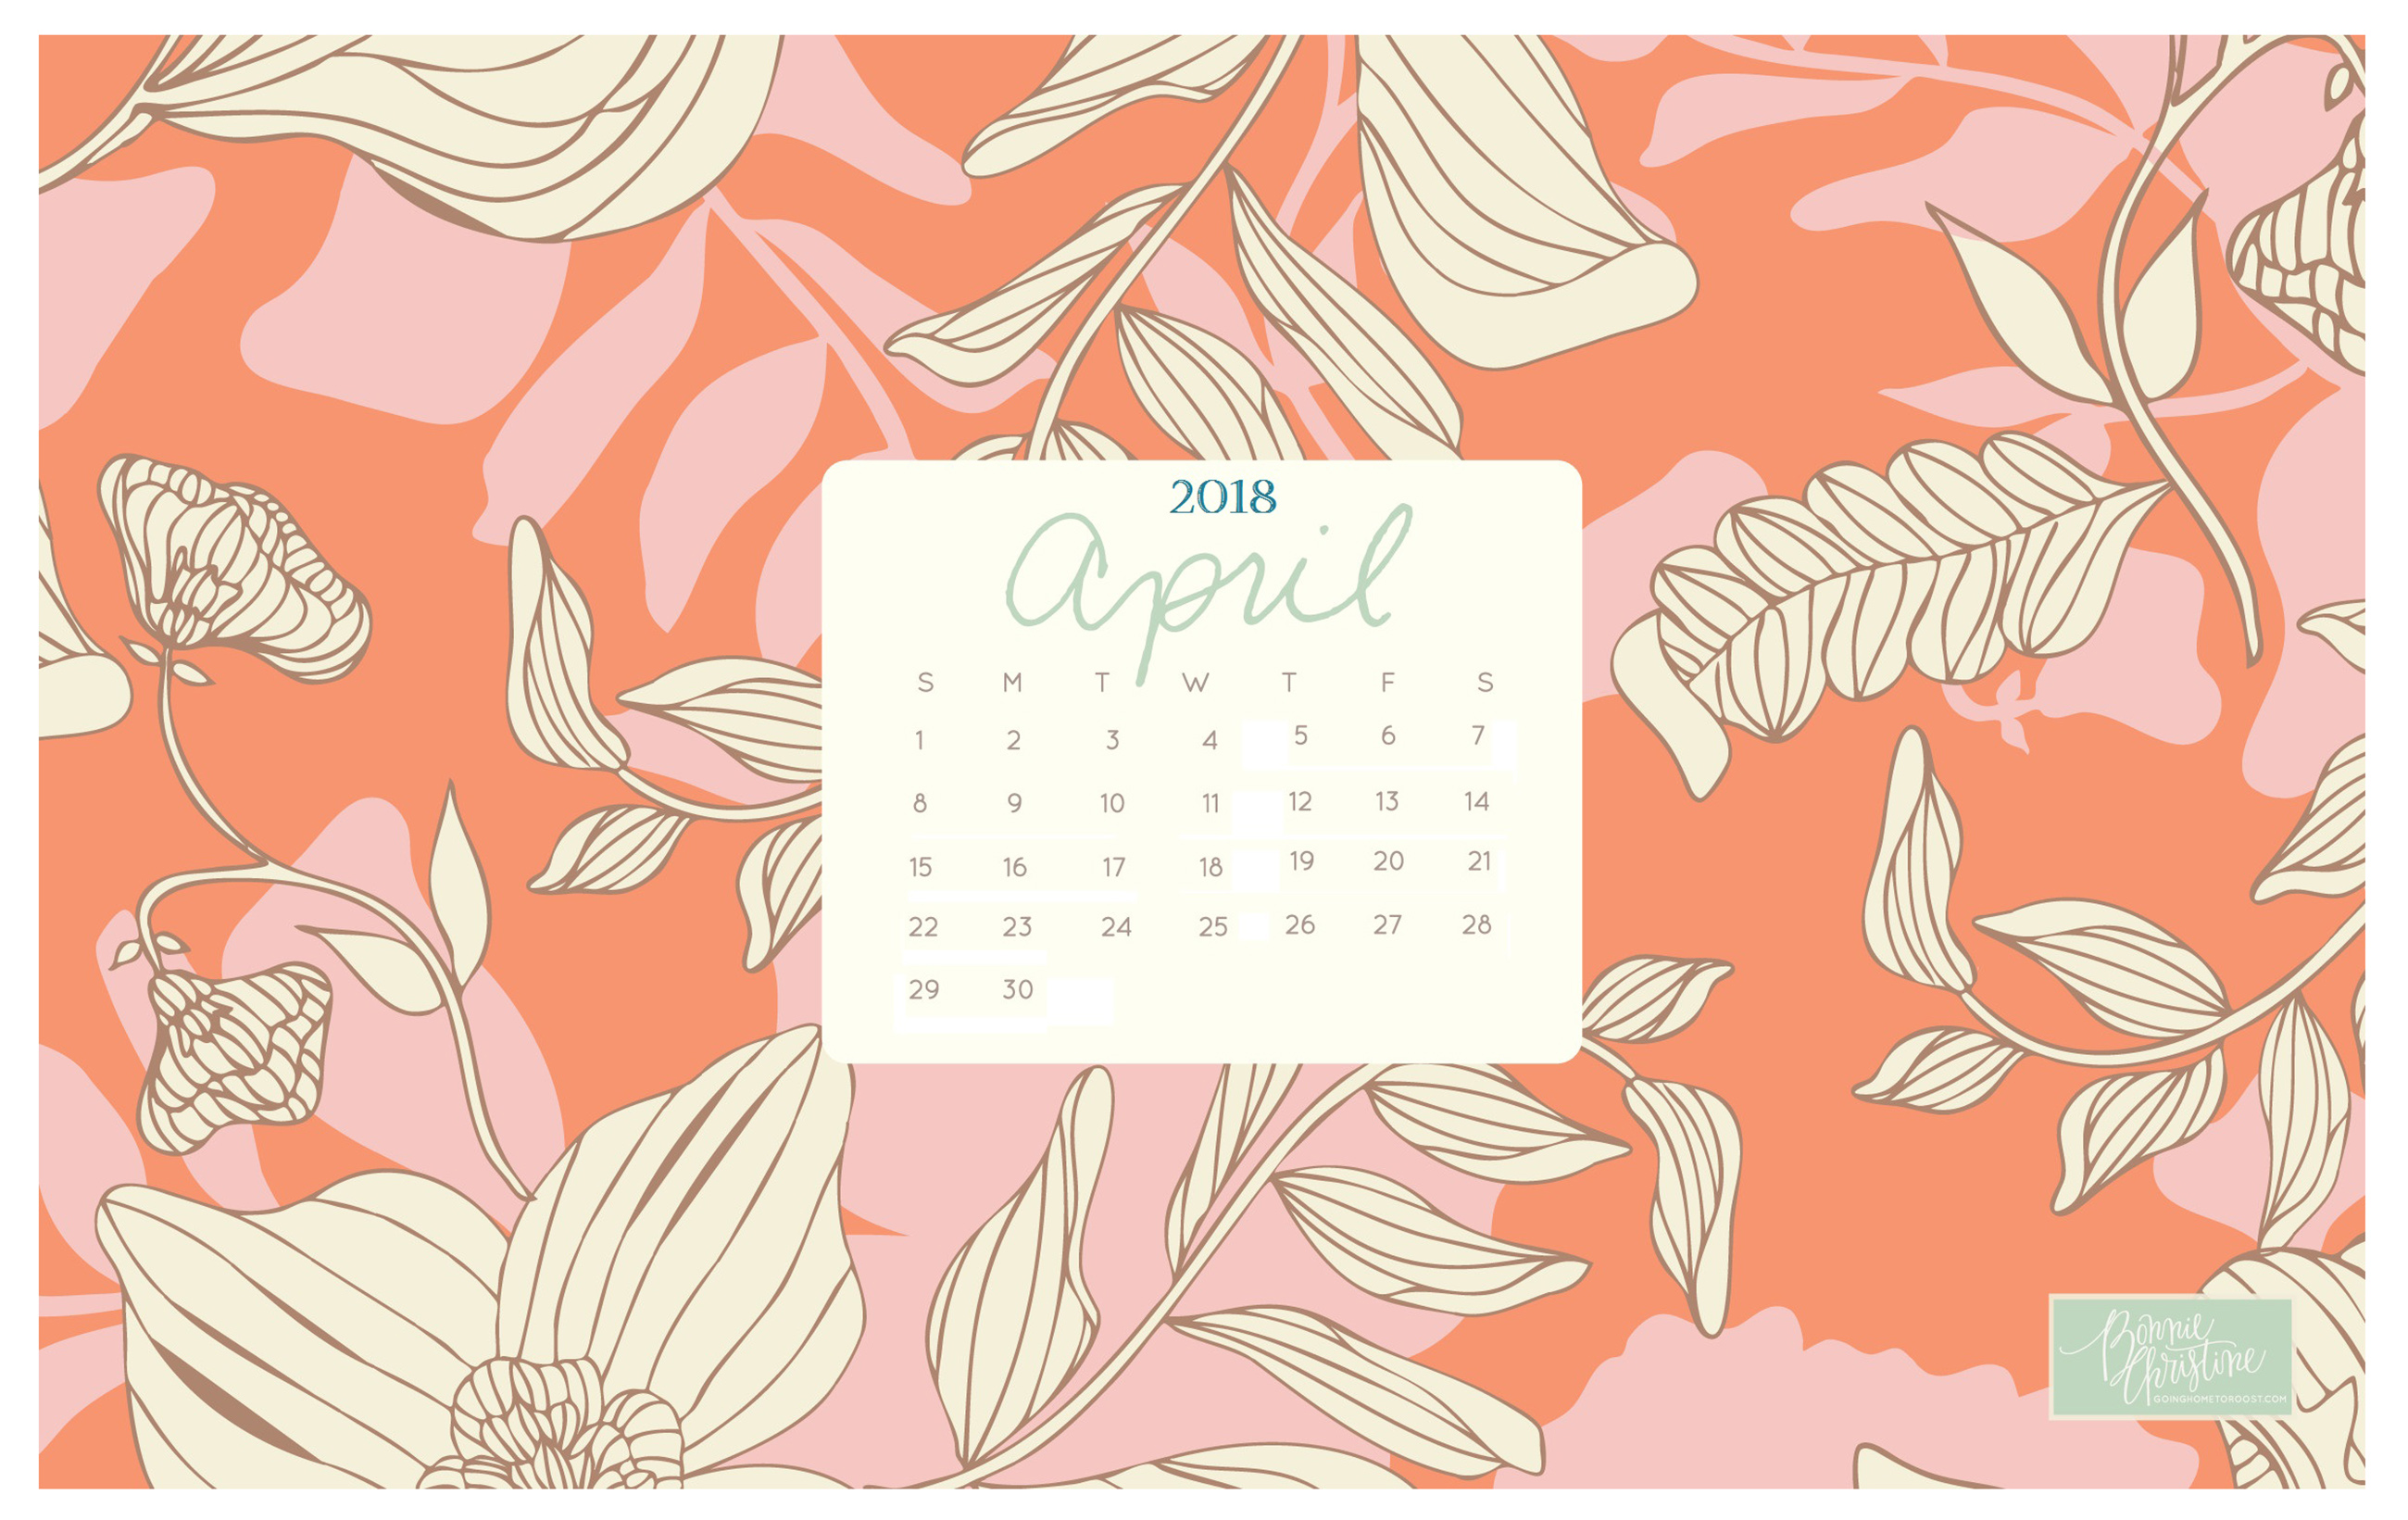 Wallpaper with April 2018 Calendar for PC iPad and SmartPhone 2600x1641